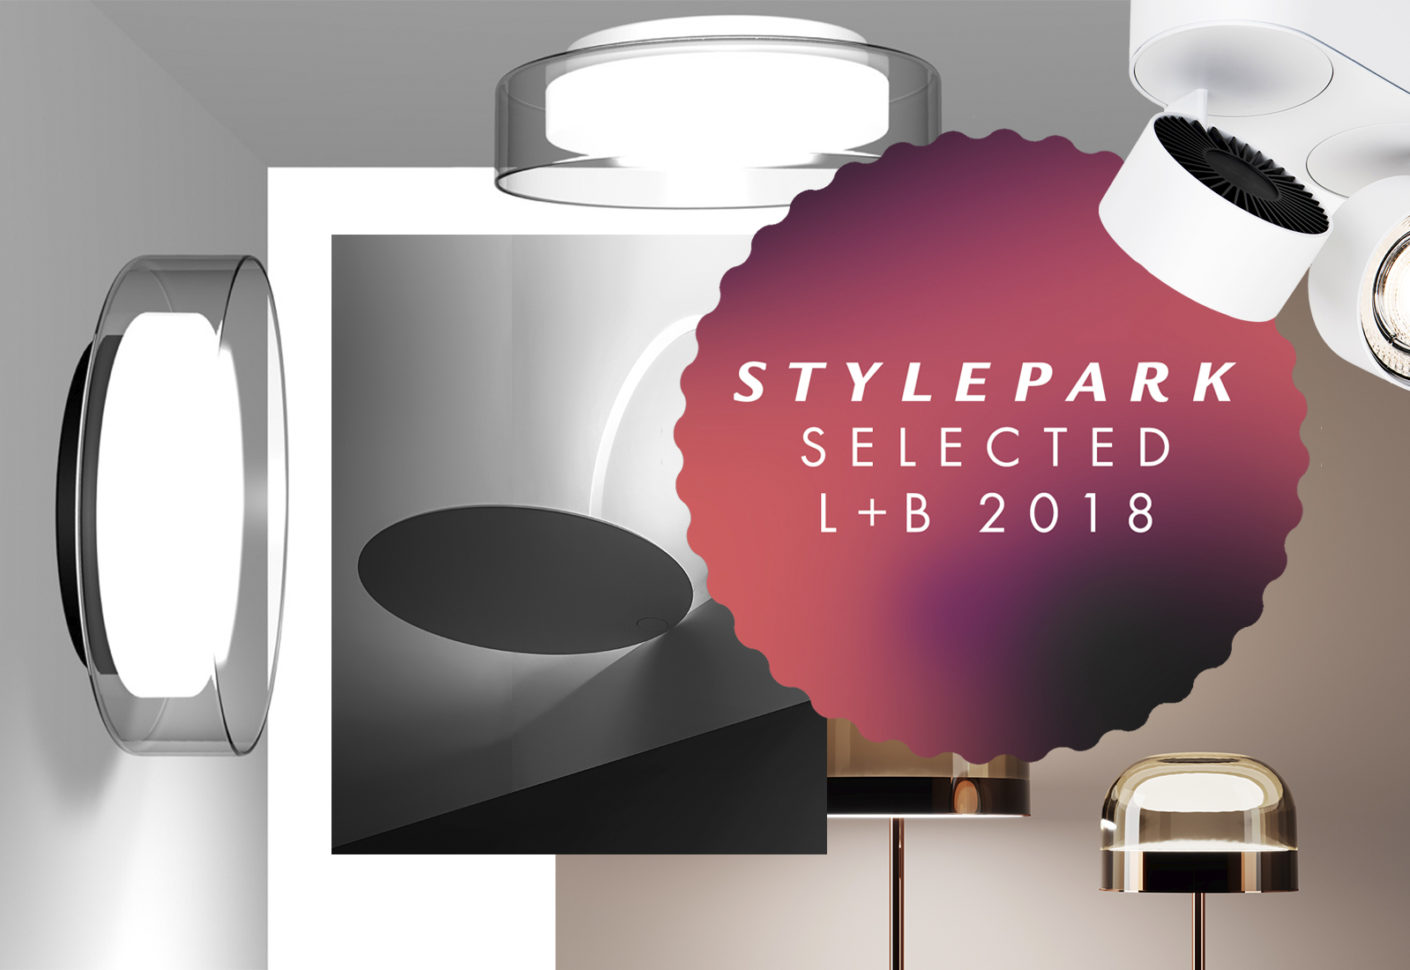 Stylepark Selected Top 33 Light+Building 2018